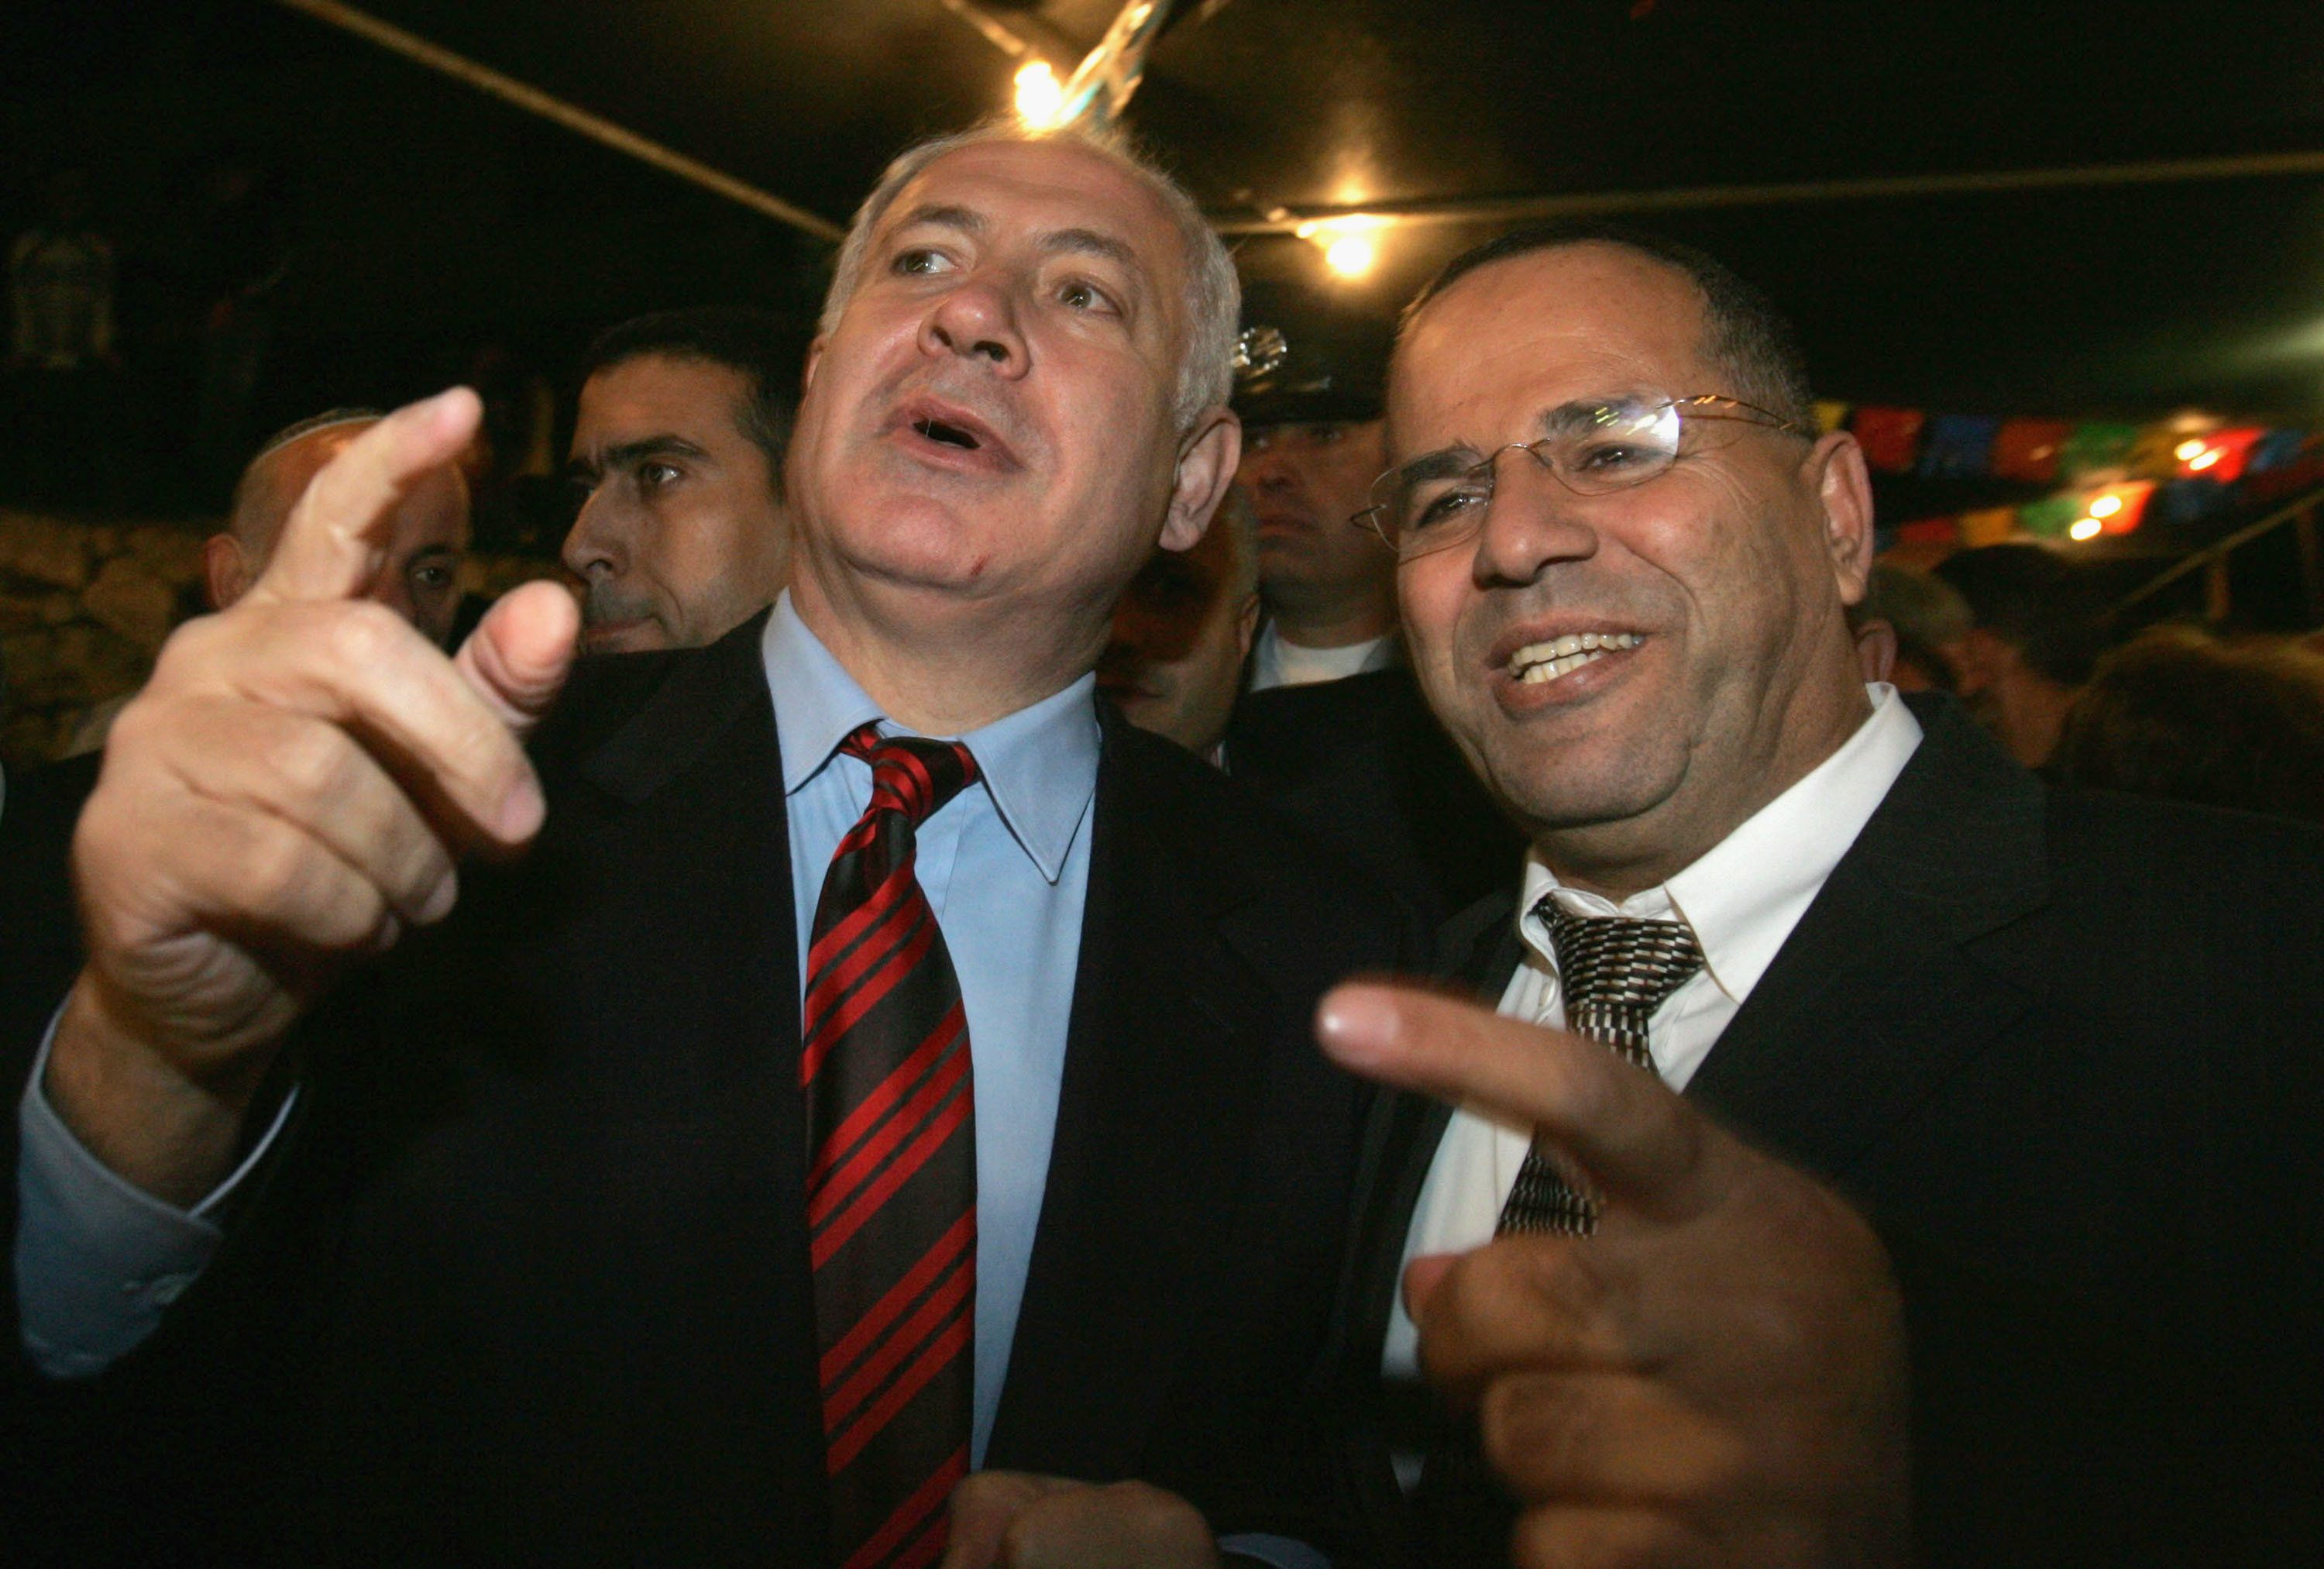 Benjamin Netanyahu (left) with Ayoub Kara, an Israeli-Druze politician, in 2005. Kara, responding to controversy over Donald